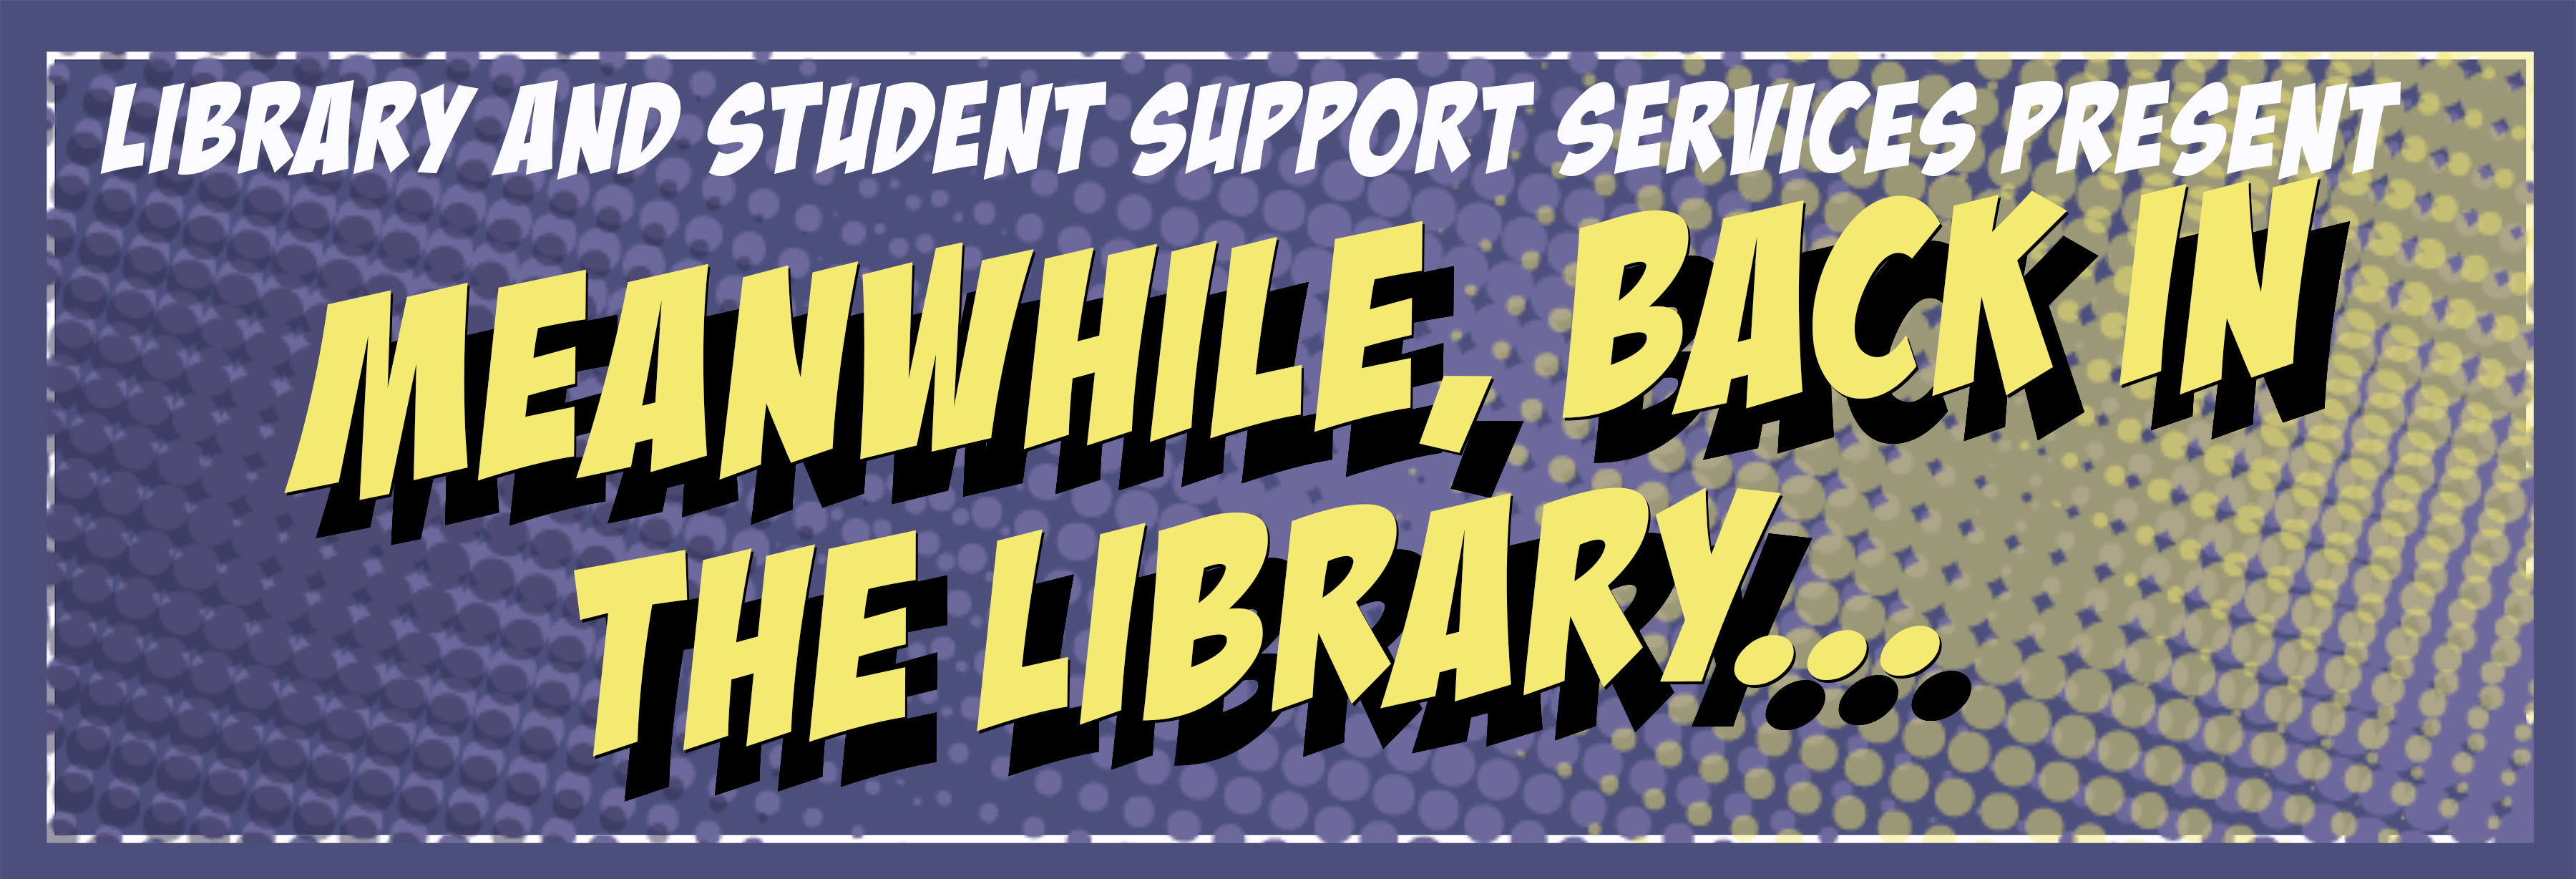 Library and Student Support Services Present: Meanwhile, in the Library...